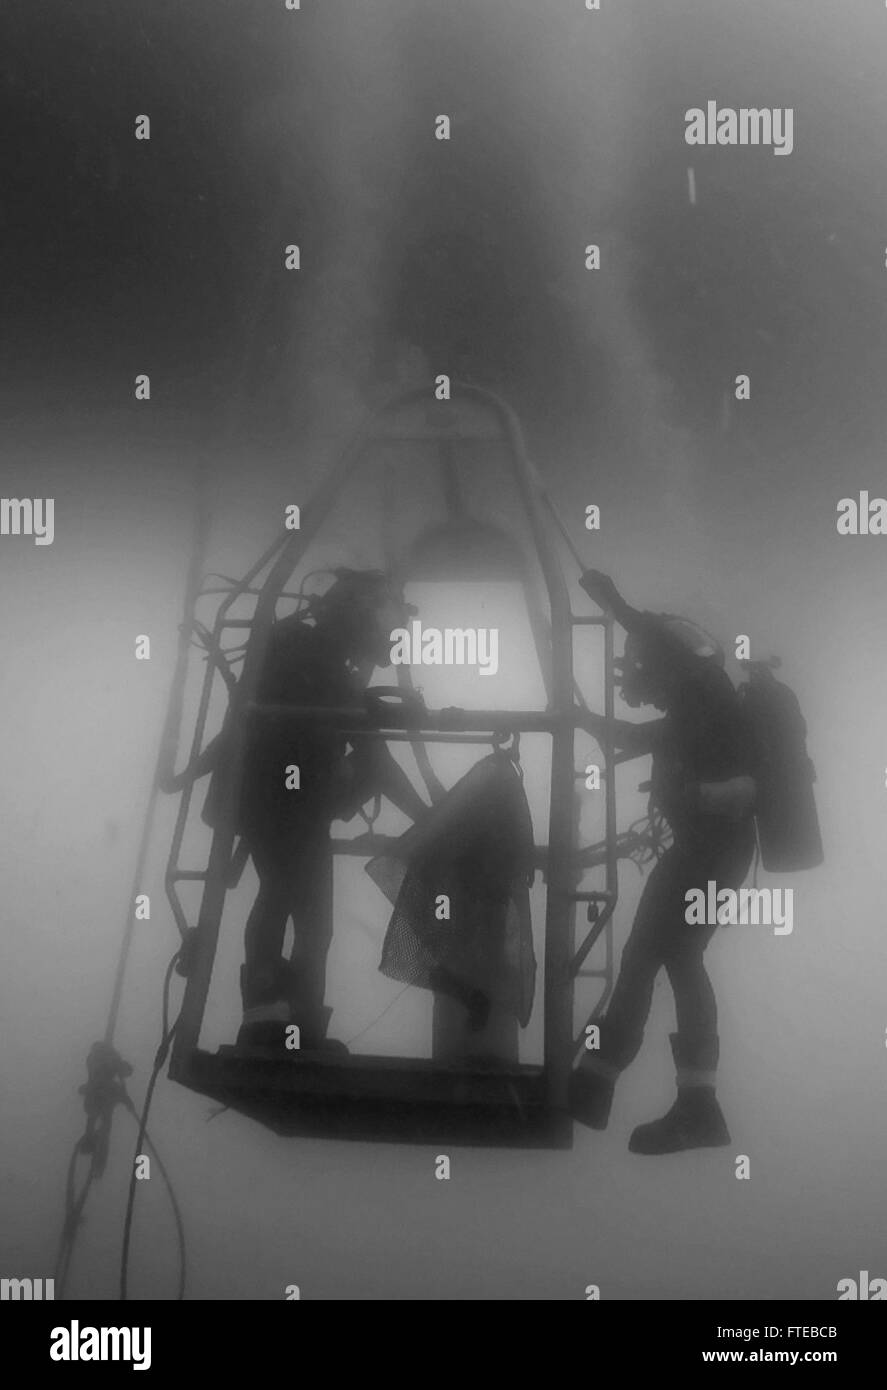 150917-N-ZZ999-001 ADRIATIC SEA (Sept. 17, 2015) Navy Diver 1st Class Sean Dargie and Navy Diver 2nd Class Seth - Stock Image